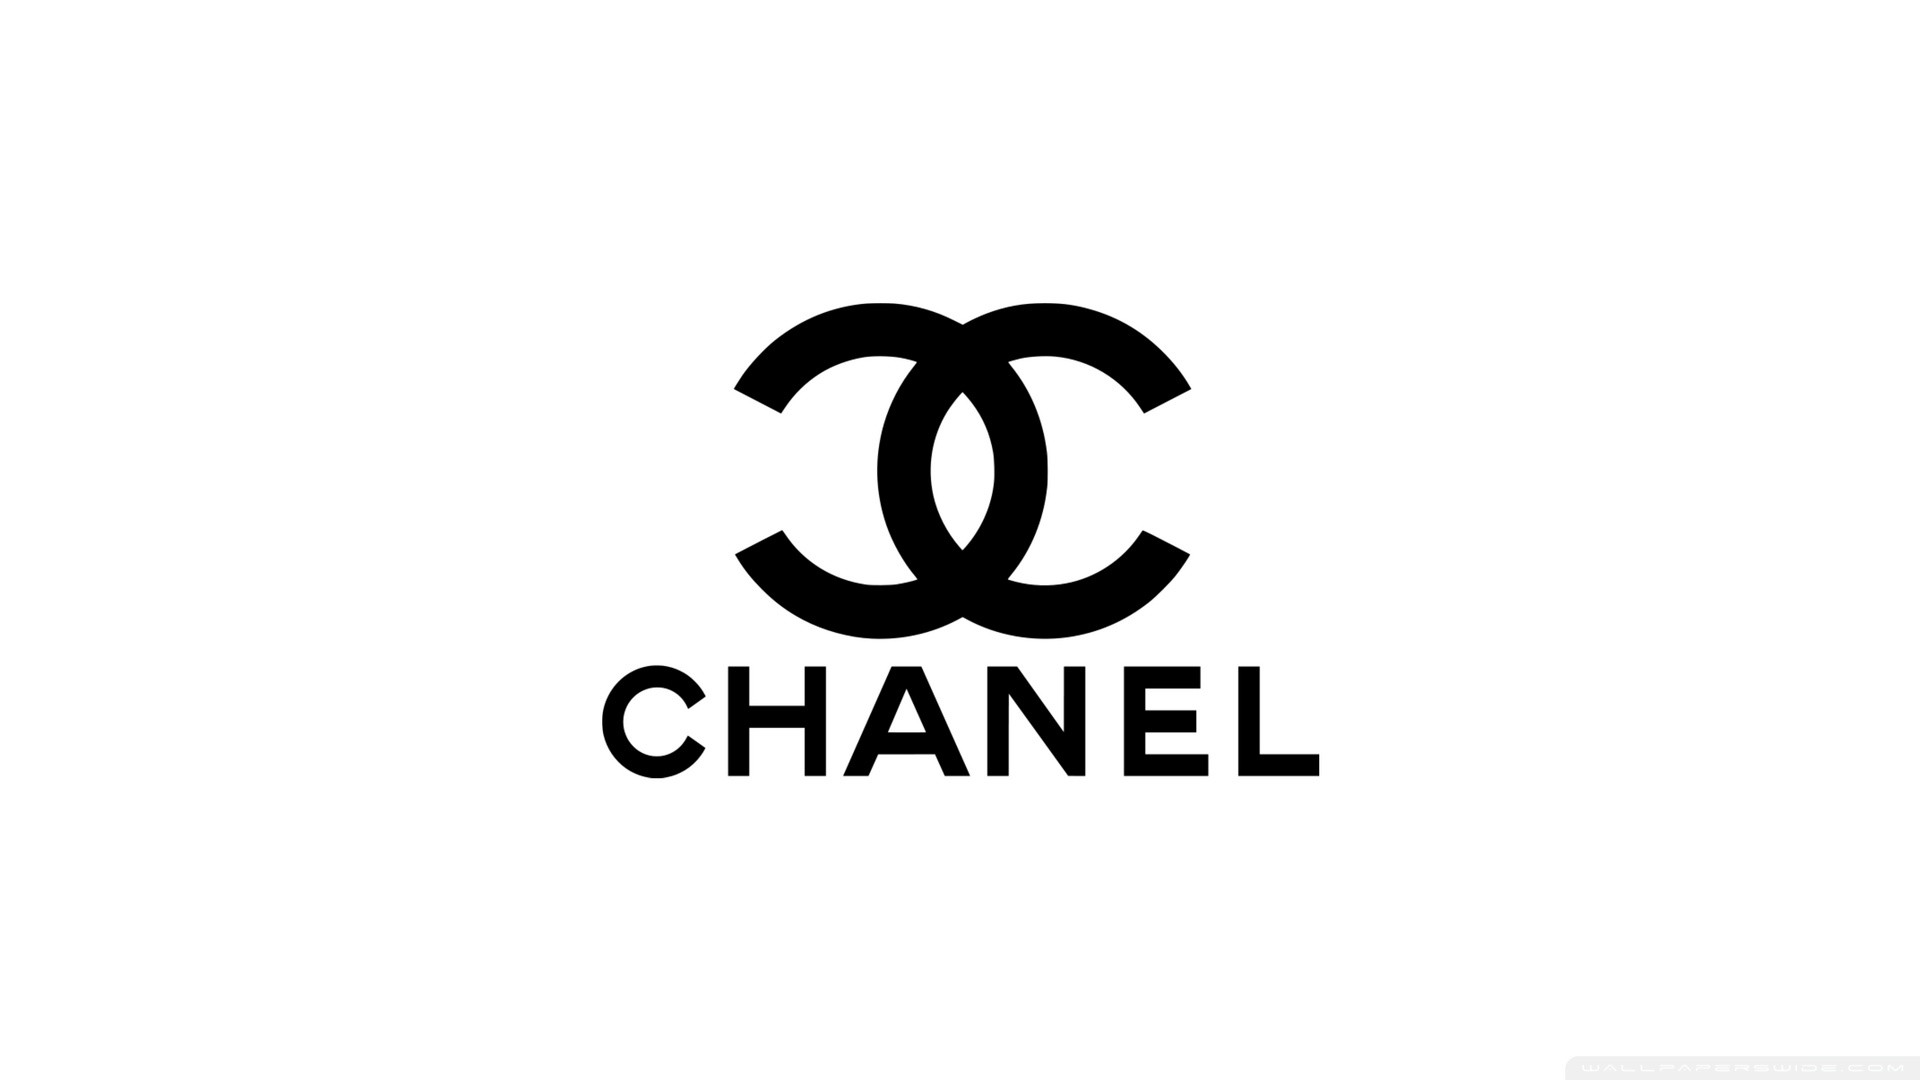 Supreme Girl Iphone Wallpaper Chanel Wallpaper For Iphone 62 Images